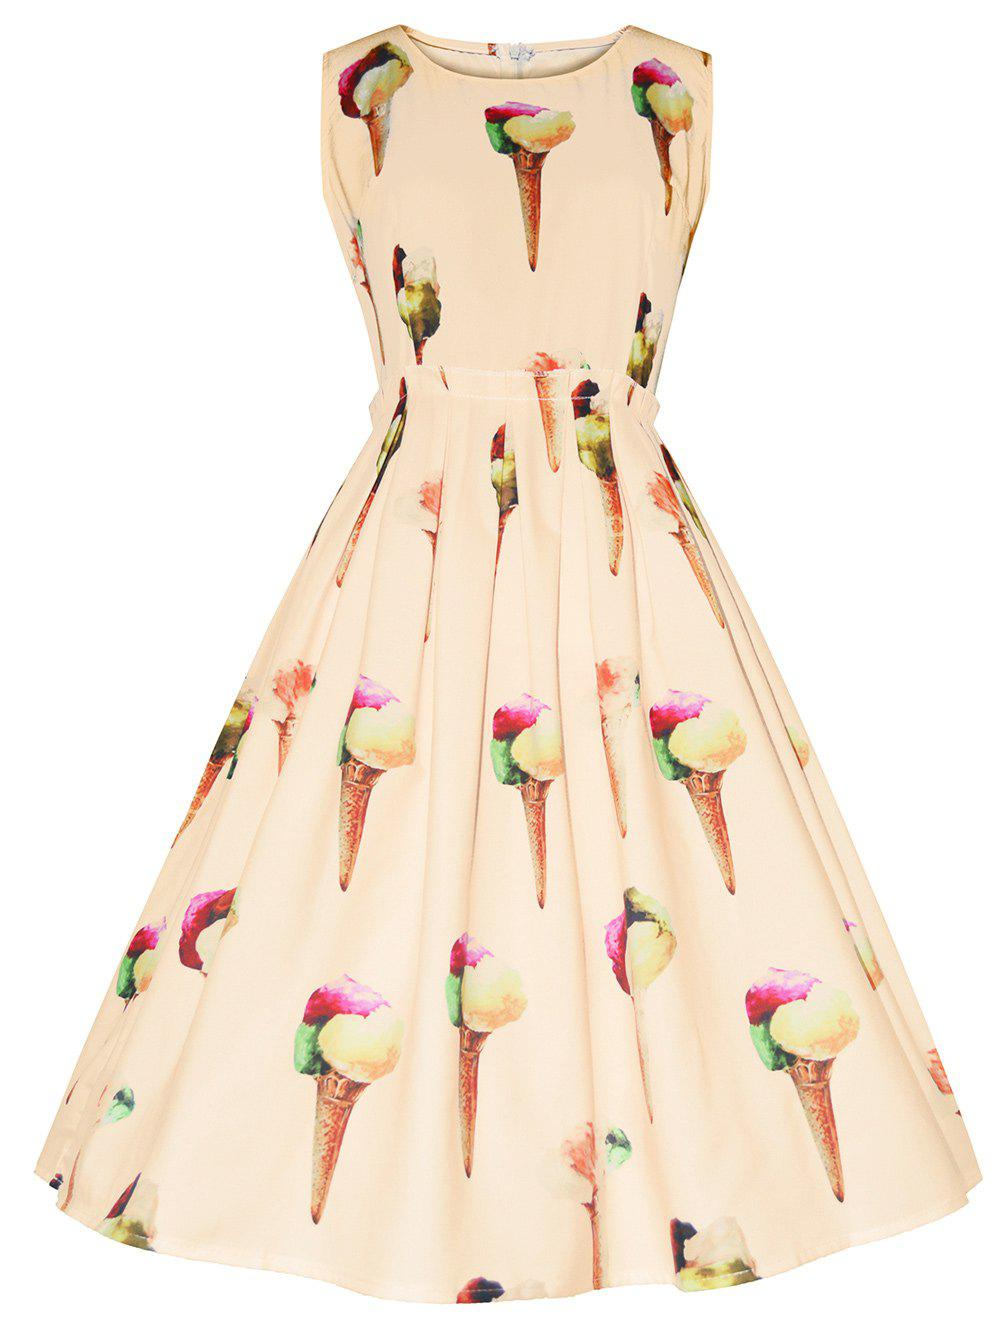 Vintage Ice Cream Print Fit and Flare DressWOMEN<br><br>Size: XL; Color: PALOMINO; Style: Vintage; Material: Cotton,Polyester; Silhouette: A-Line; Dress Type: Fit and Flare Dress,Swing Dress; Dresses Length: Mid-Calf; Neckline: Round Collar; Sleeve Length: Sleeveless; Pattern Type: Others; With Belt: No; Season: Summer; Weight: 0.3500kg; Package Contents: 1 x Dress;